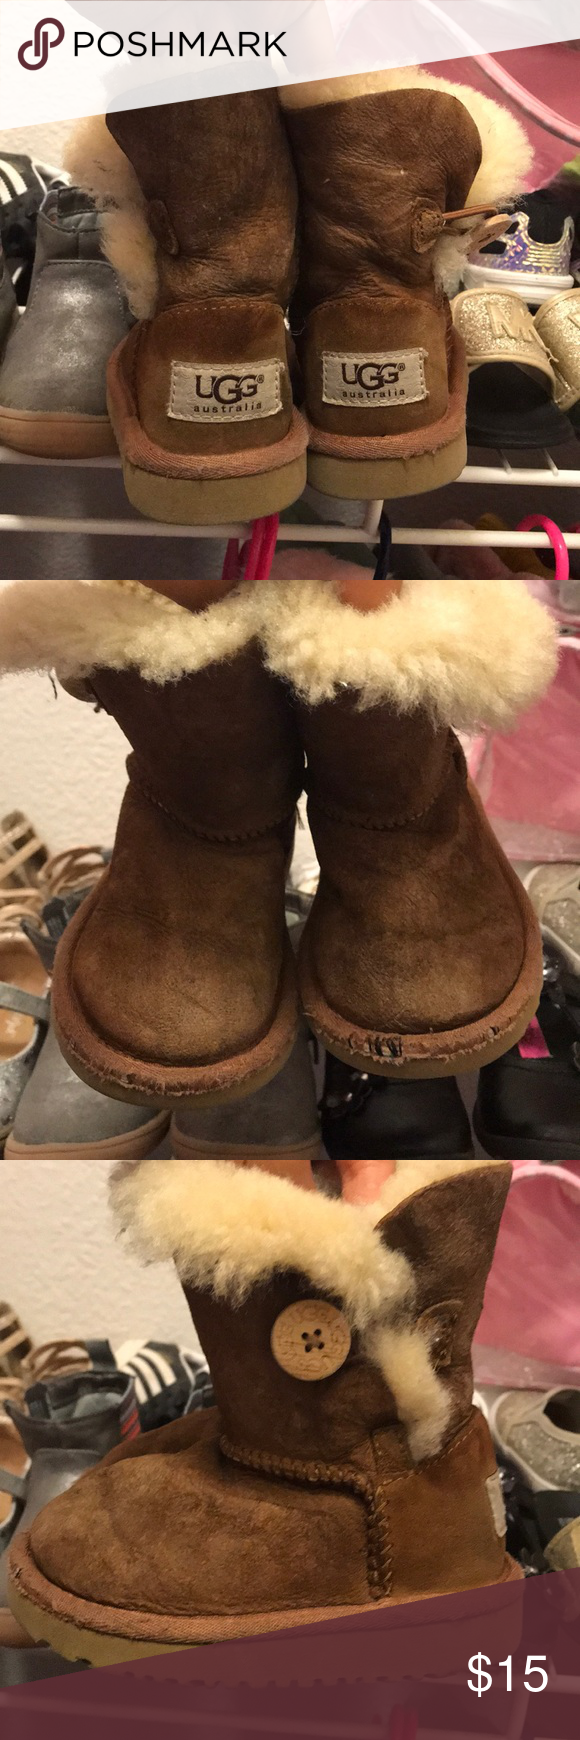 6C uggs   Uggs, Shoes boots uggs, Boots